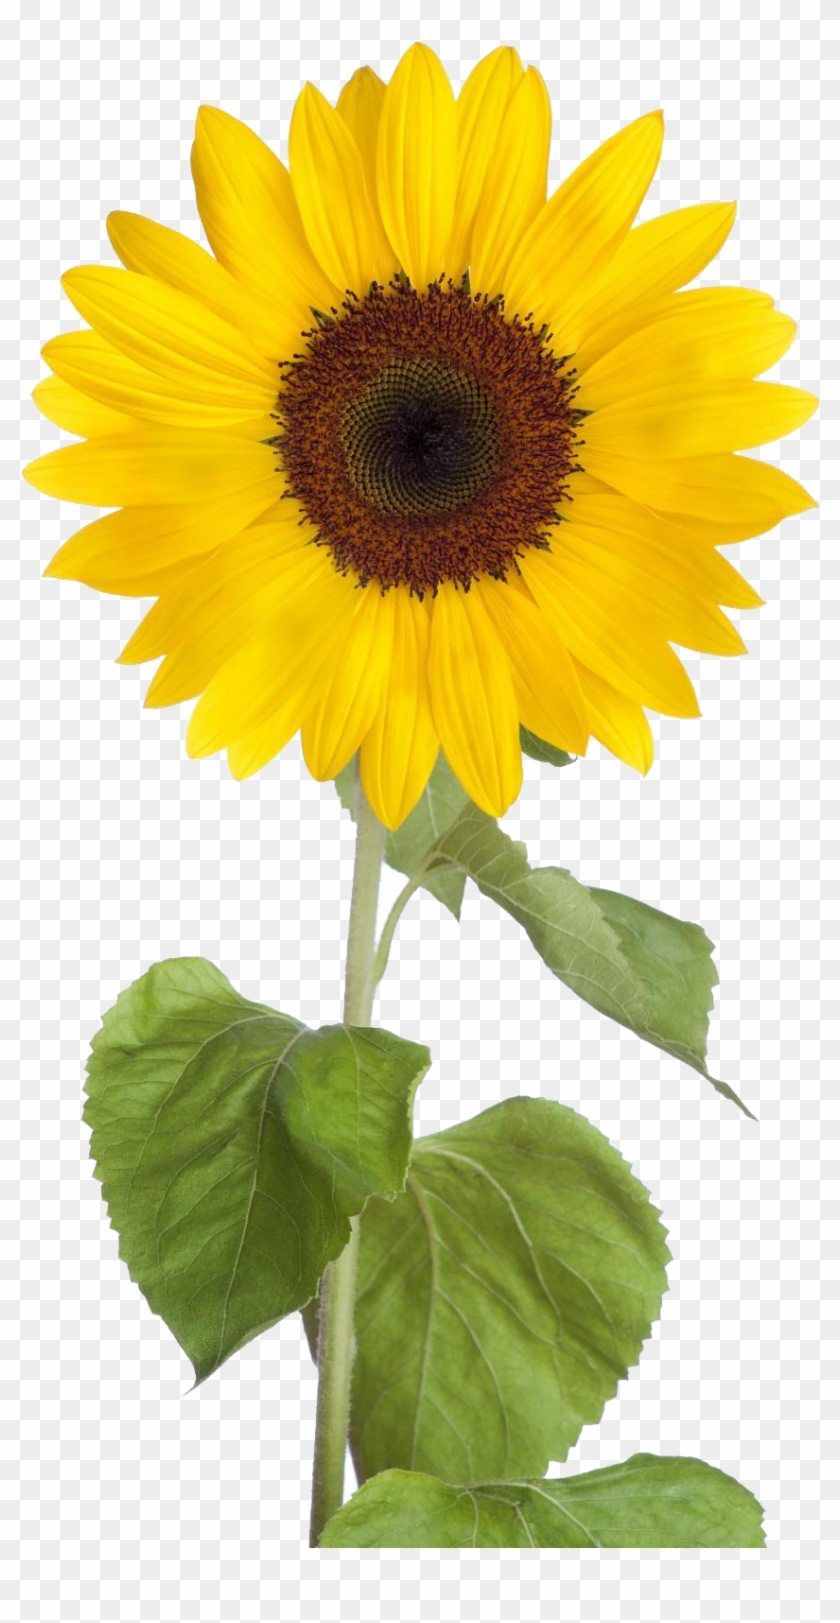 Sunflower Png Free Download.